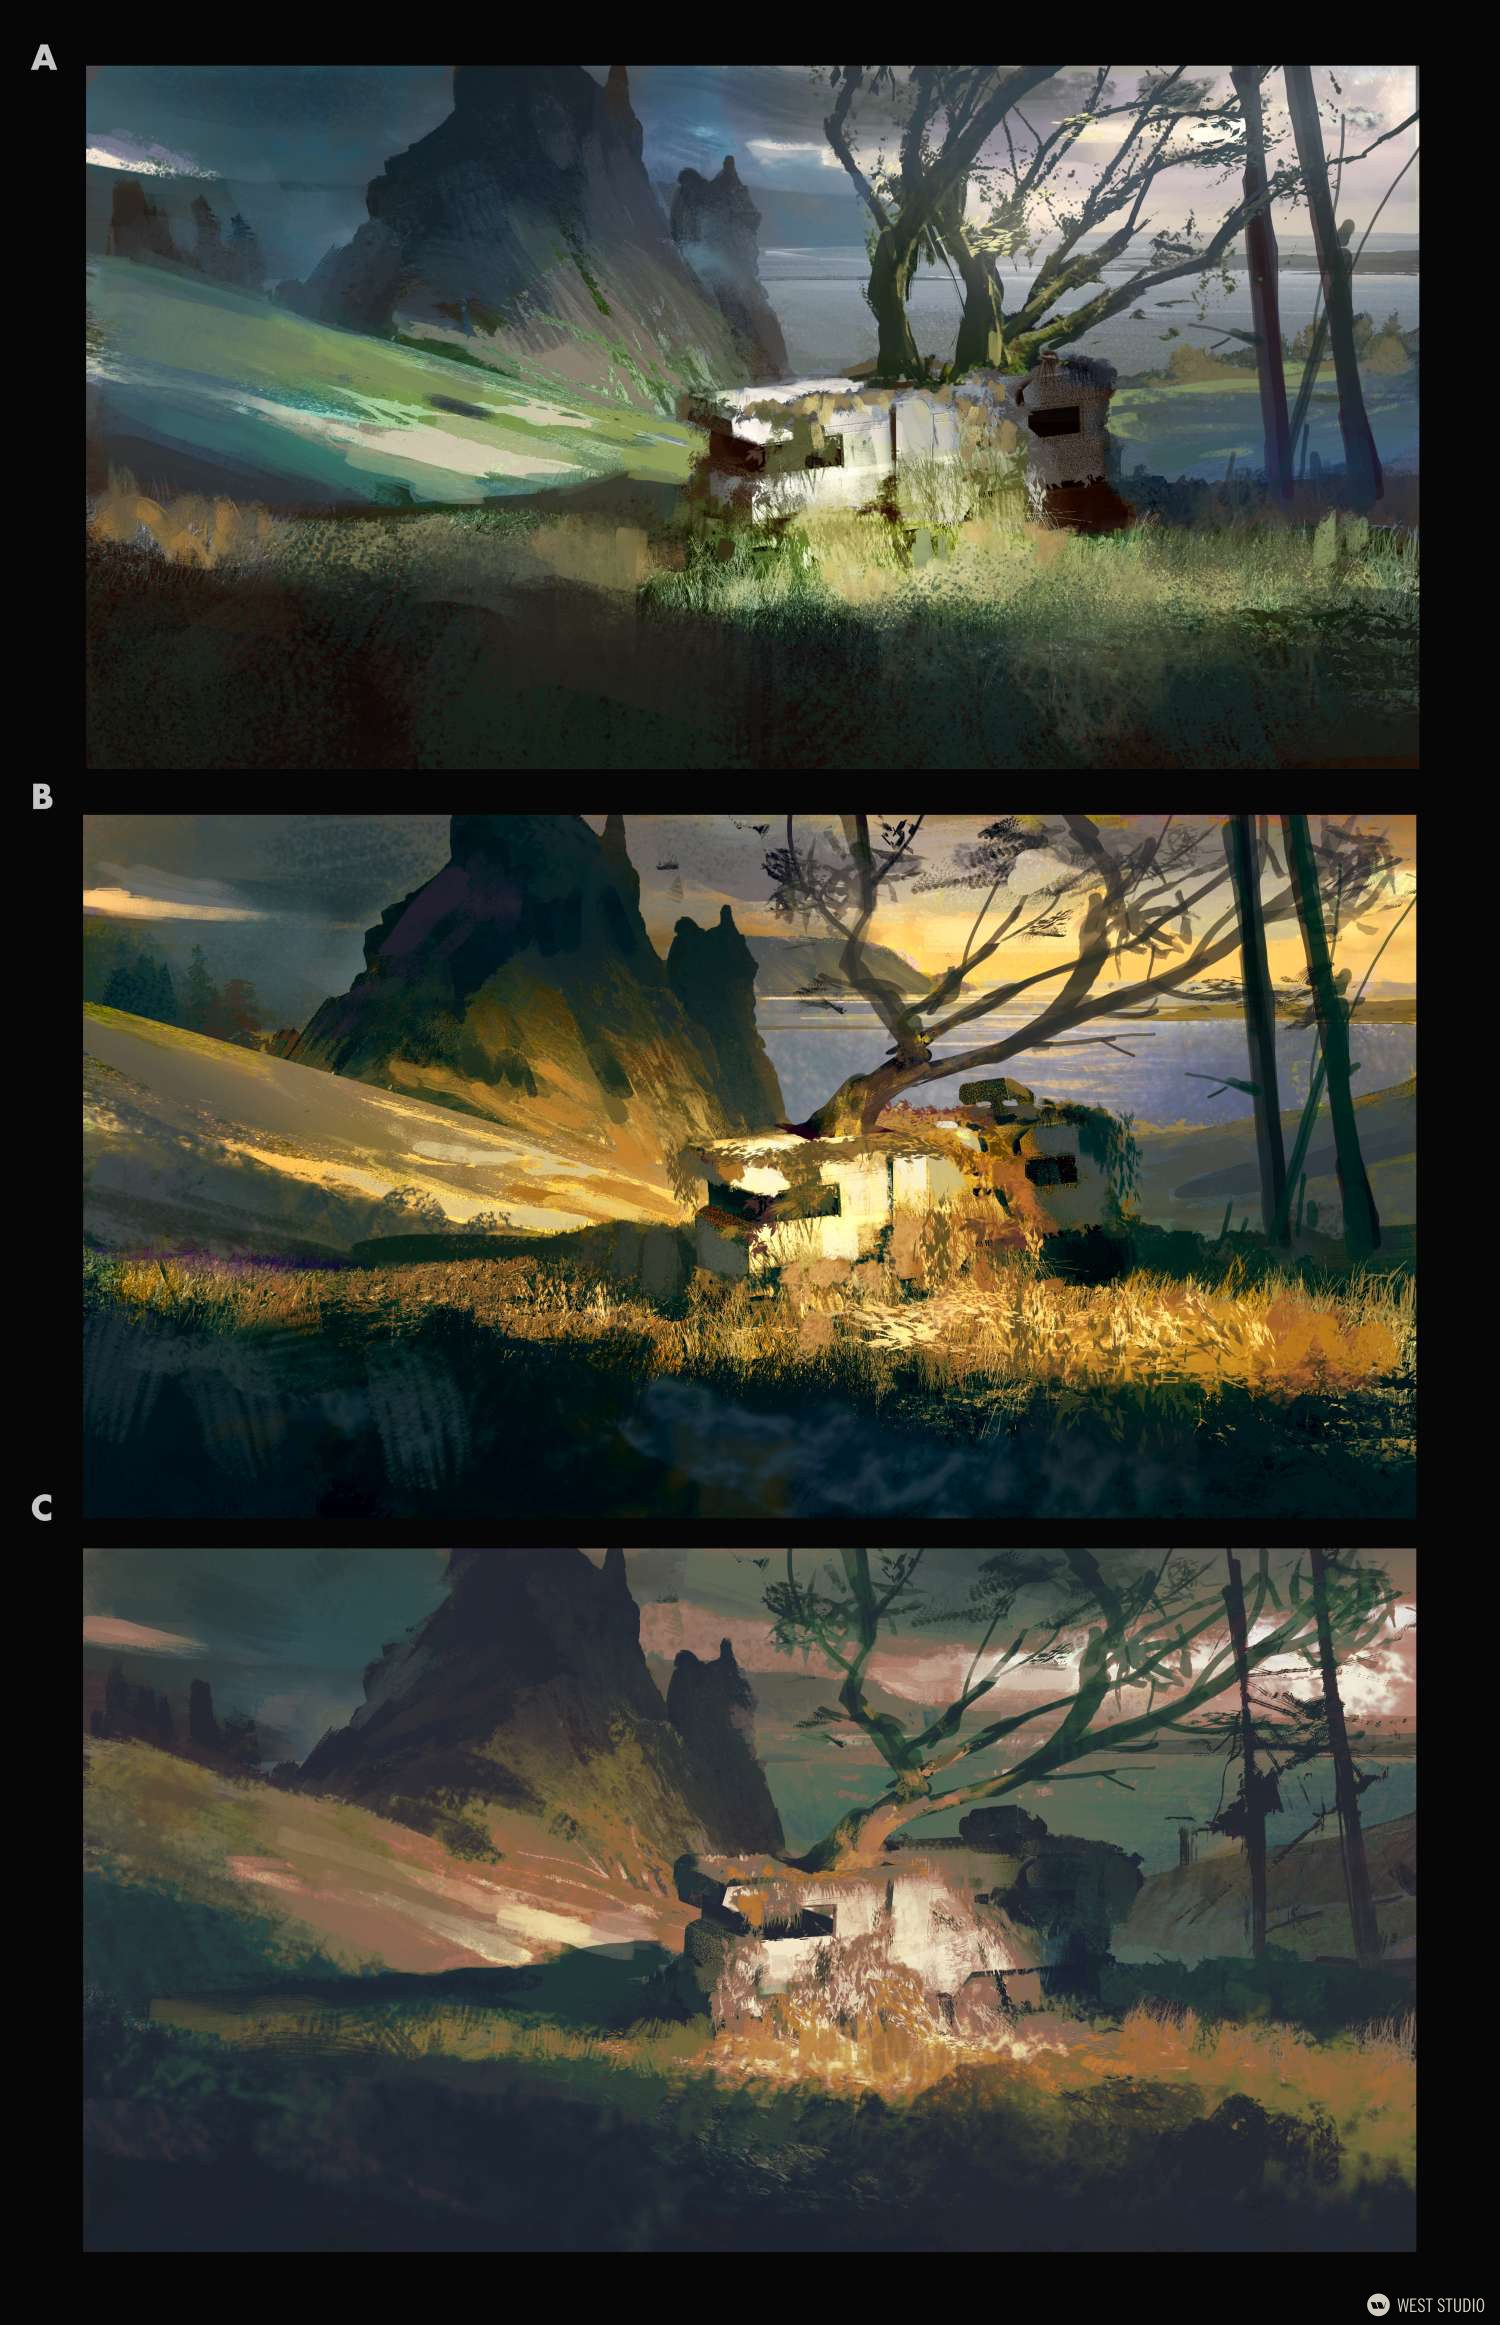 Vehicle Design, Futuristic, Sci-fi, Concept Art, Color Keys, Coor Study